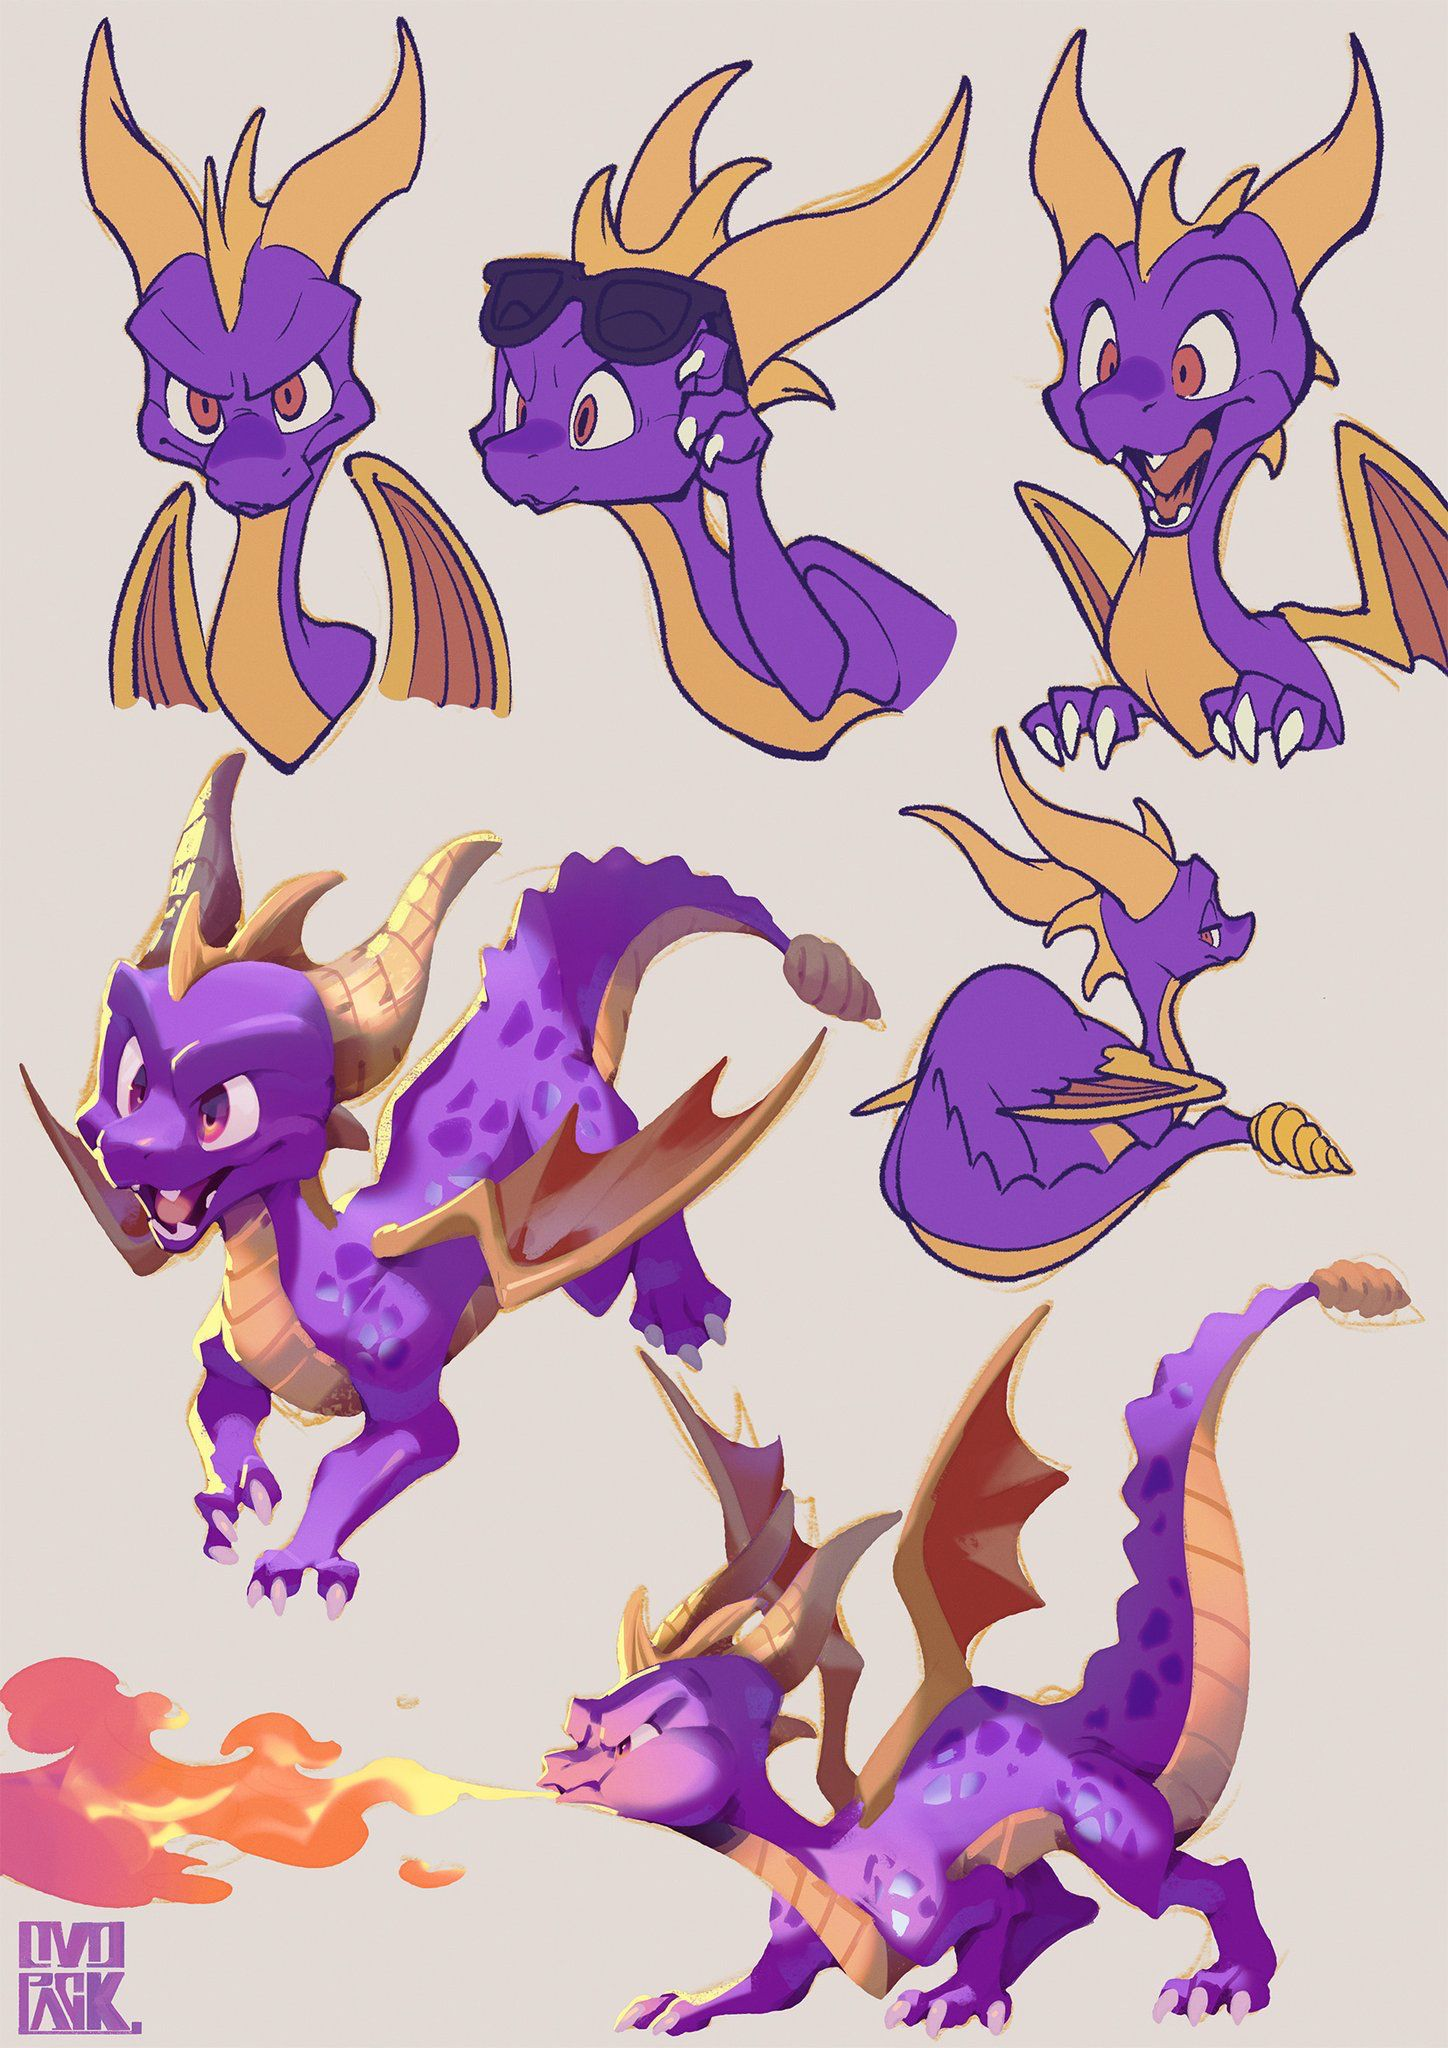 Pin By Nicole Klunder On Video Games Spyro And Cynder Cute Dragons Dragon Games